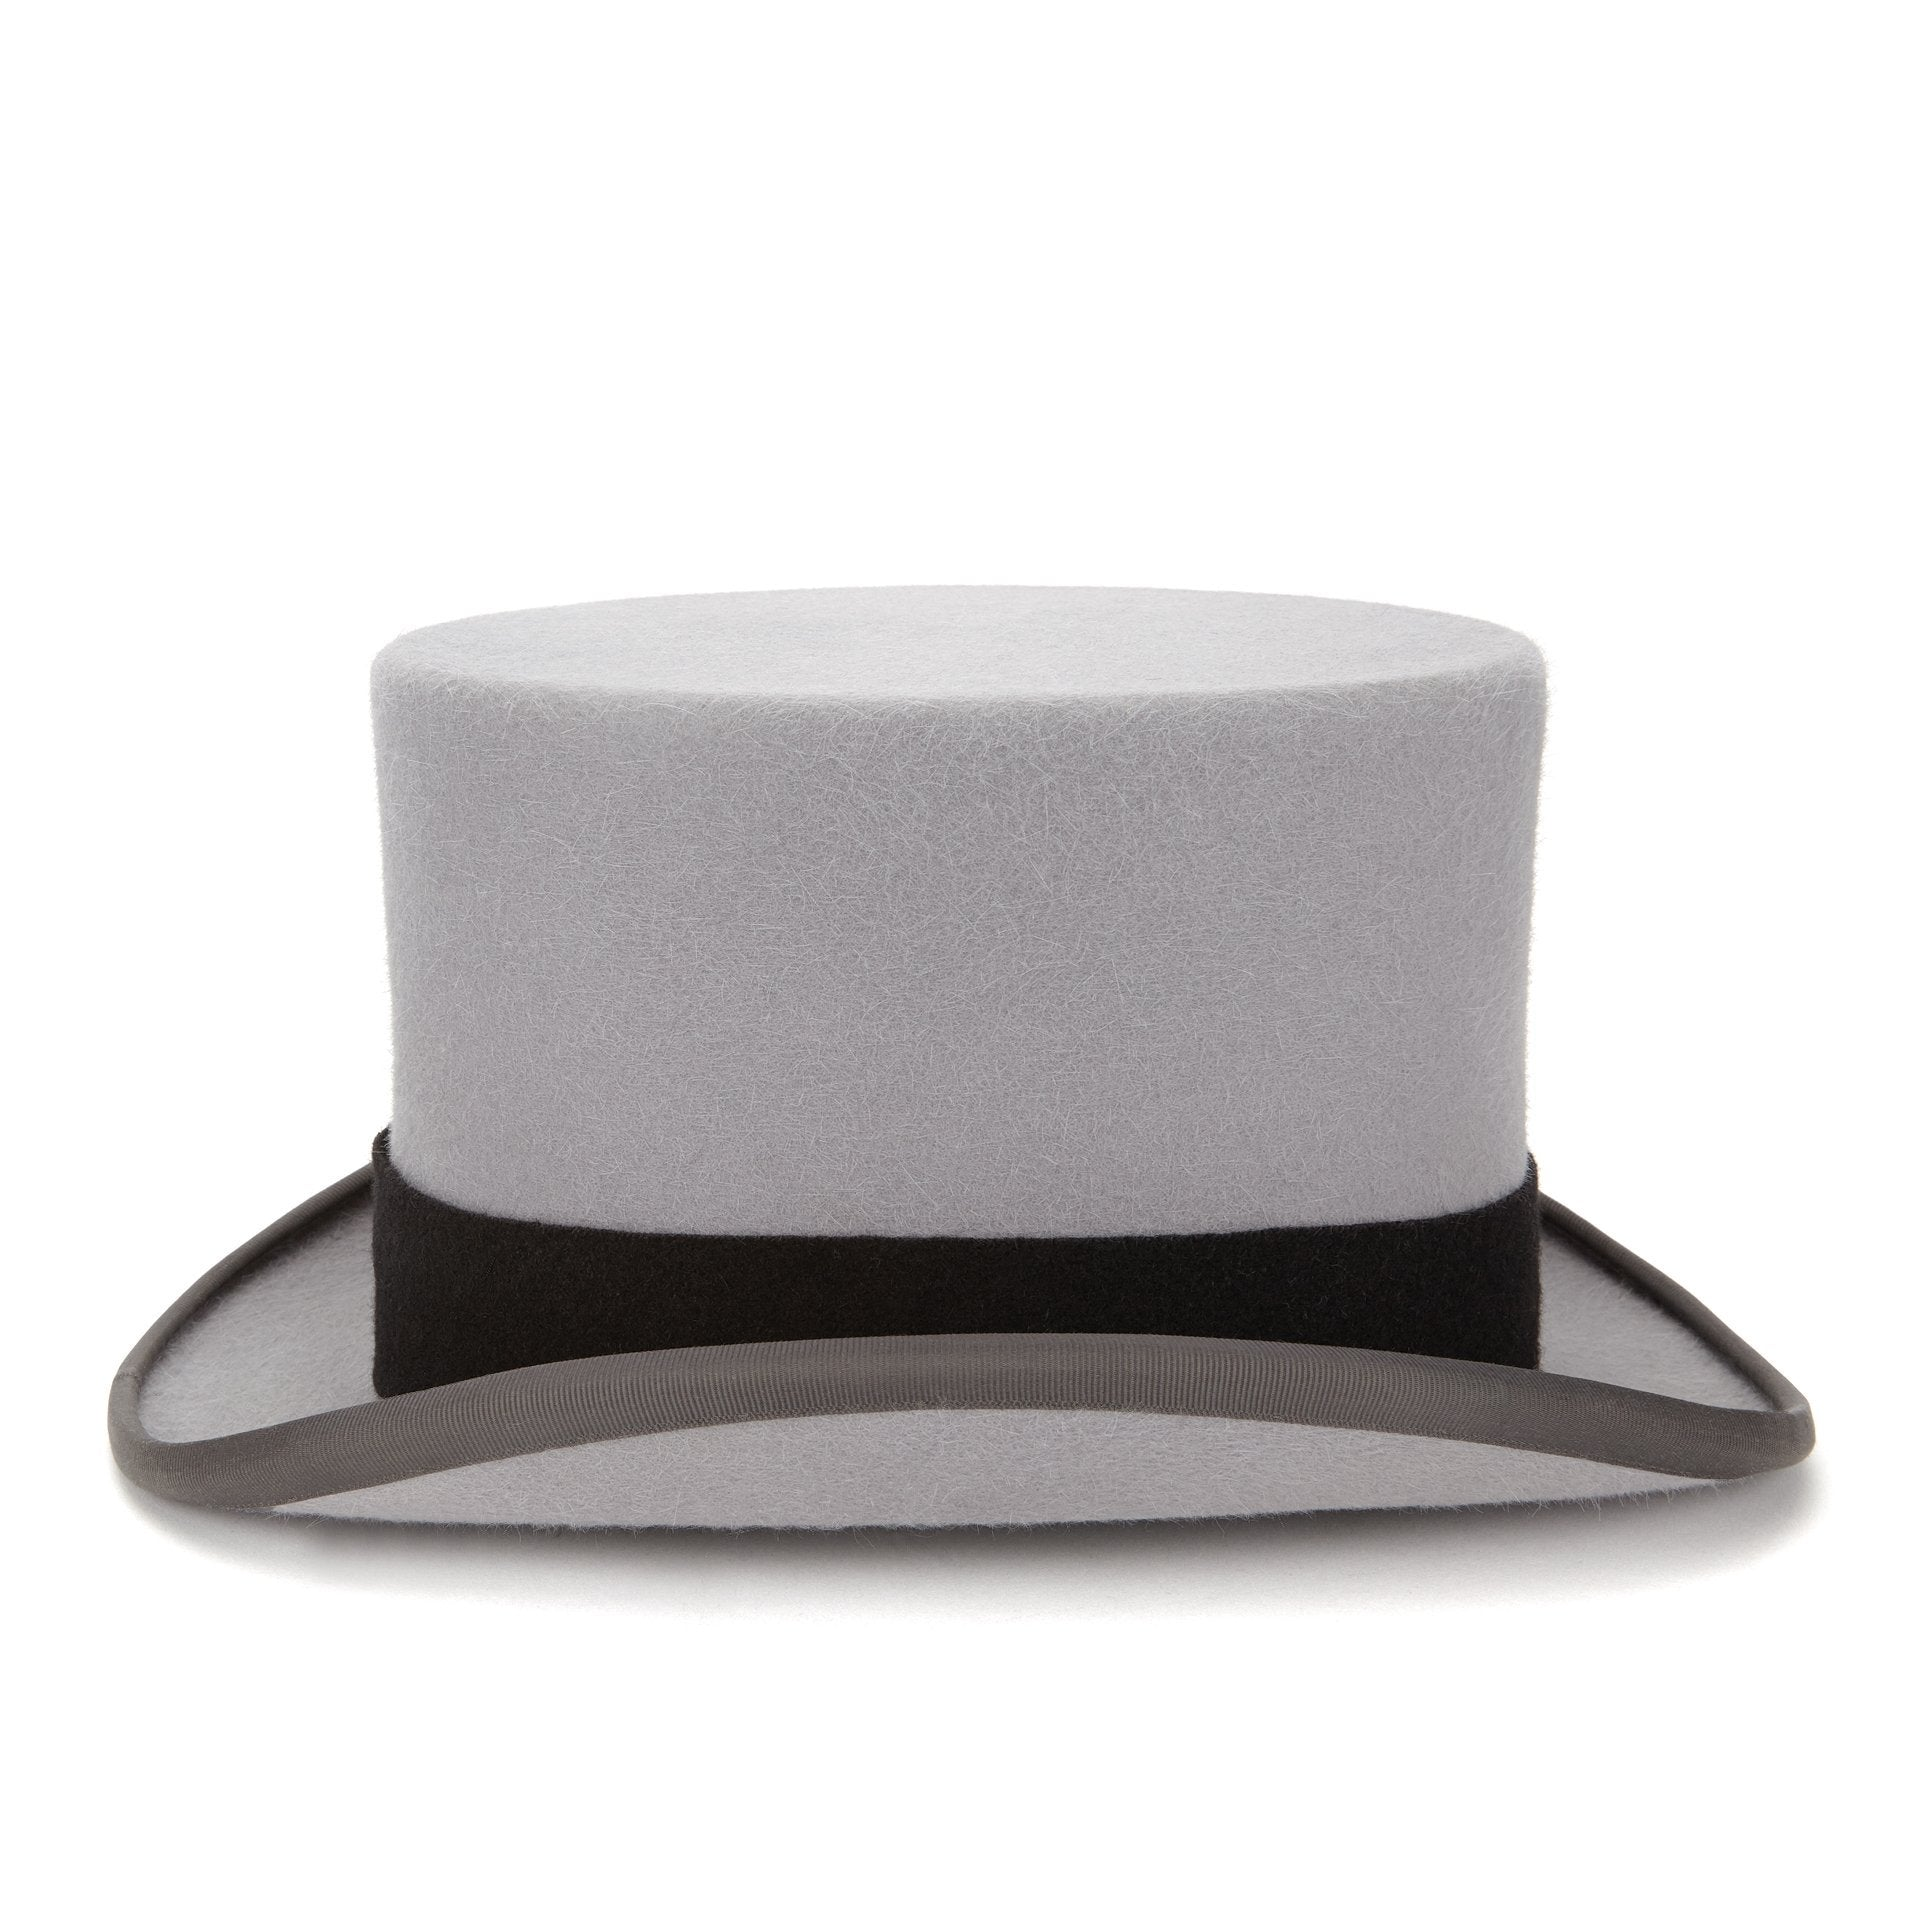 Ascot top hat - Products - Lock & Co. Hatters London UK